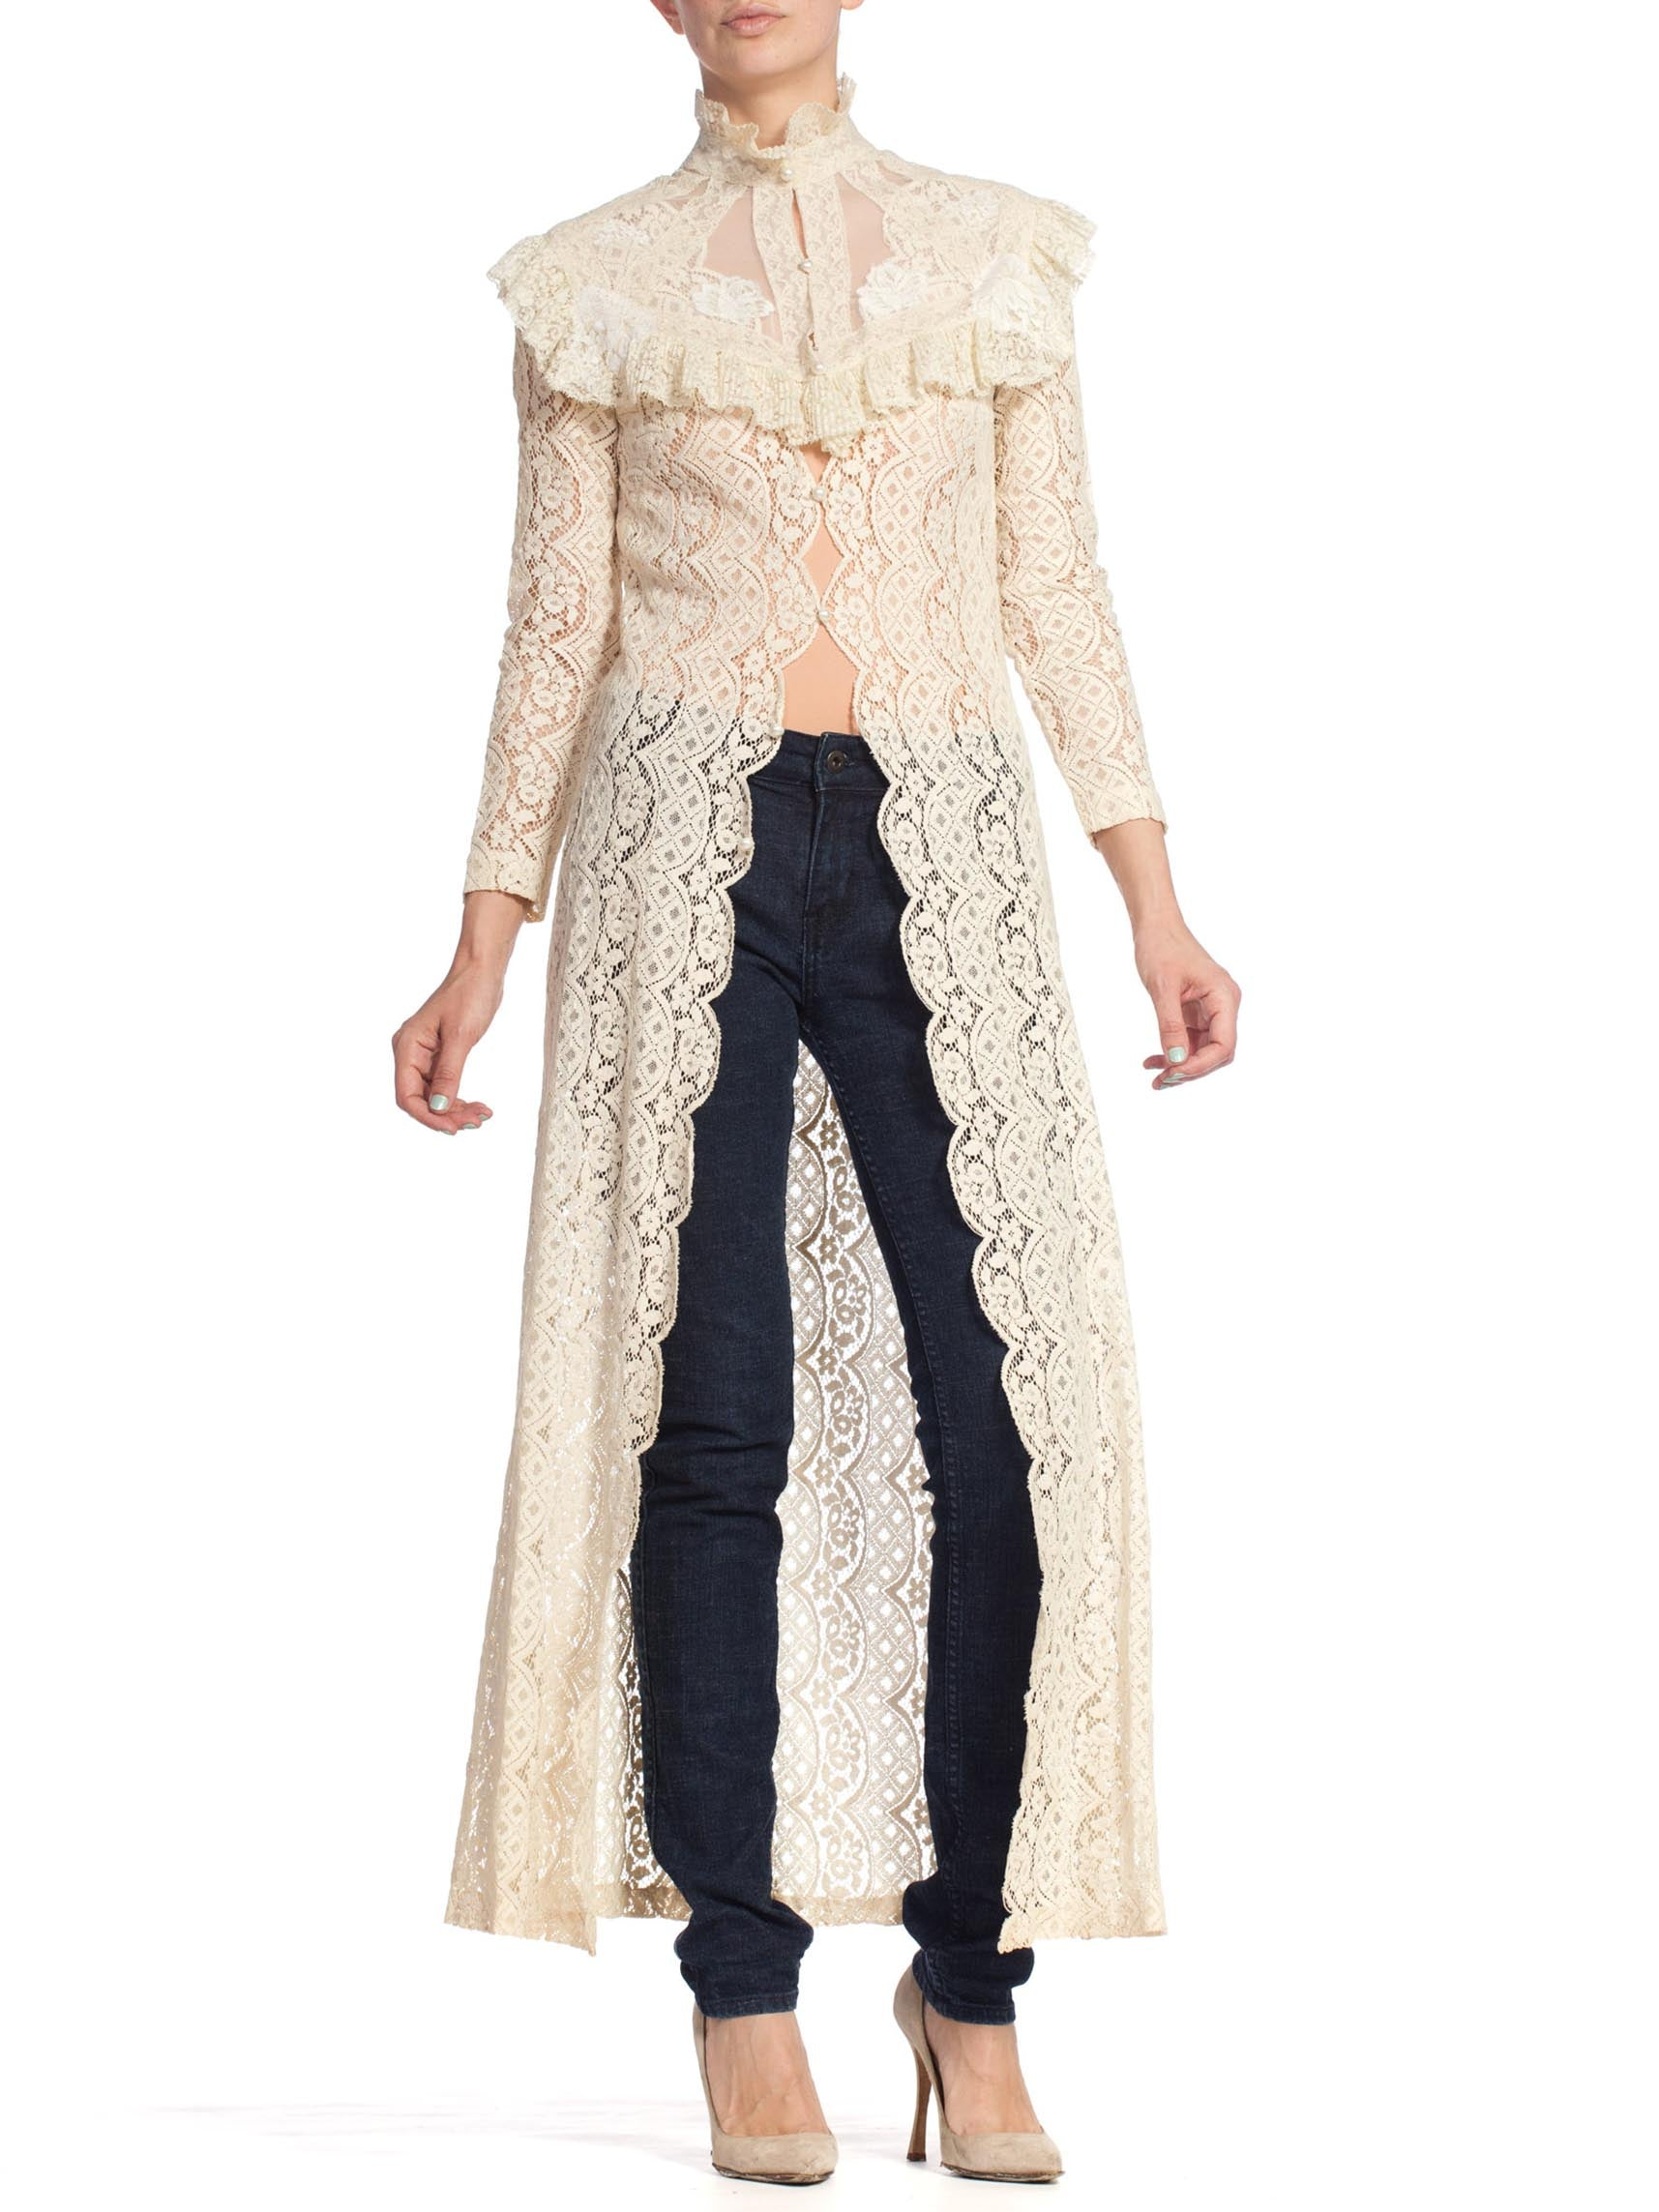 1970'S Ivory Cotton Lace Victorian Revival Duster Dress